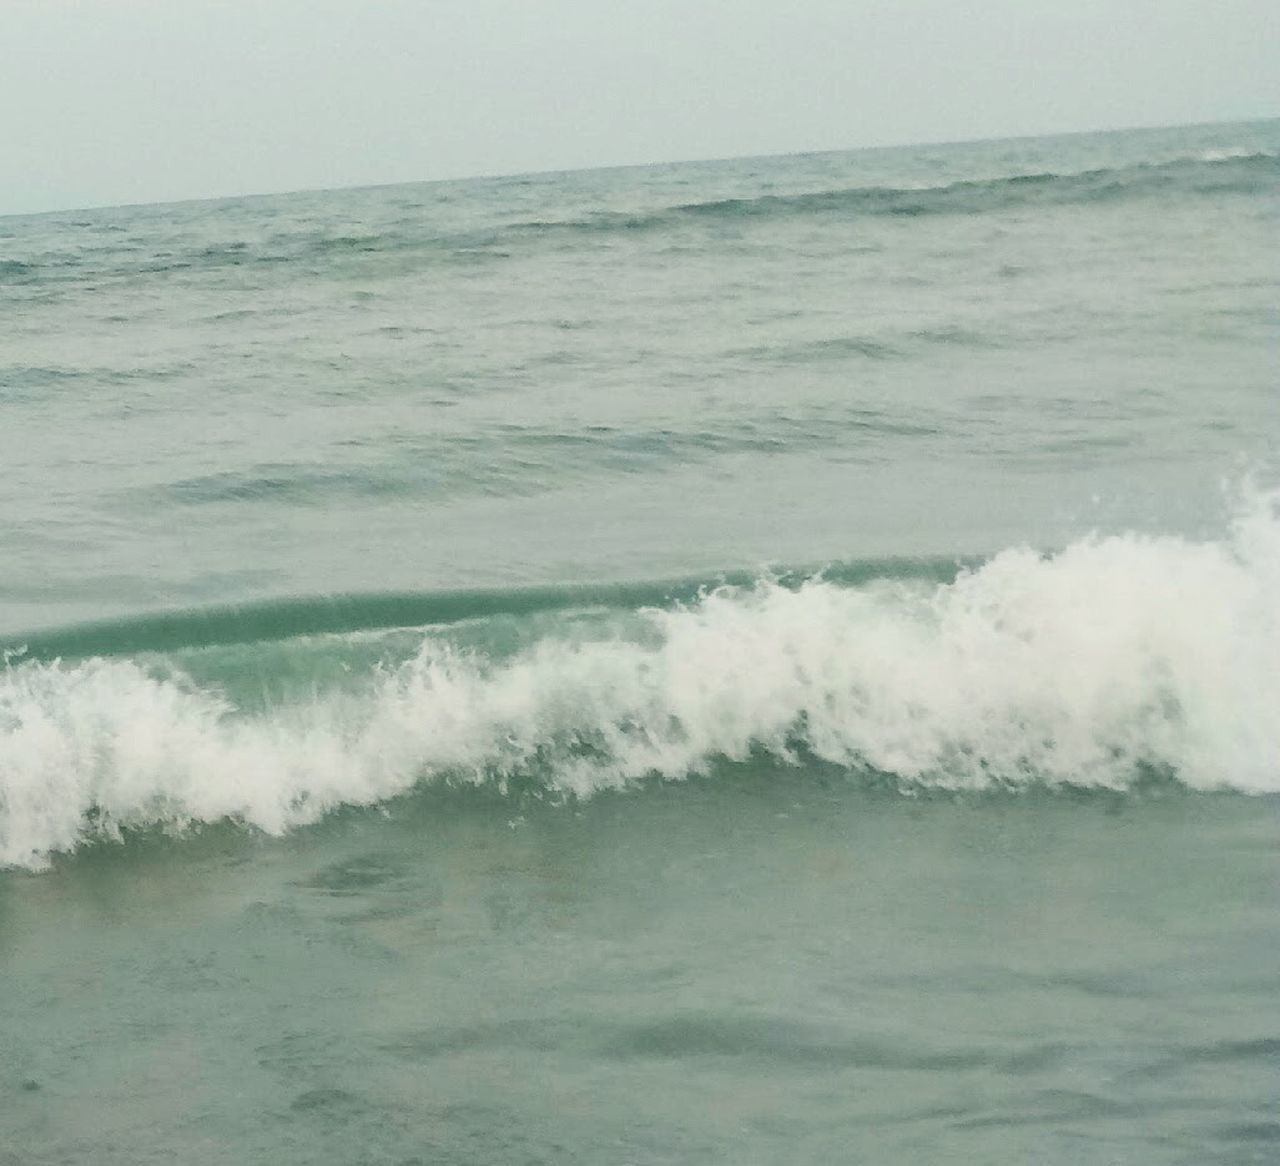 sea, water, wave, nature, beauty in nature, no people, horizon over water, motion, scenics, waterfront, day, outdoors, power in nature, sky